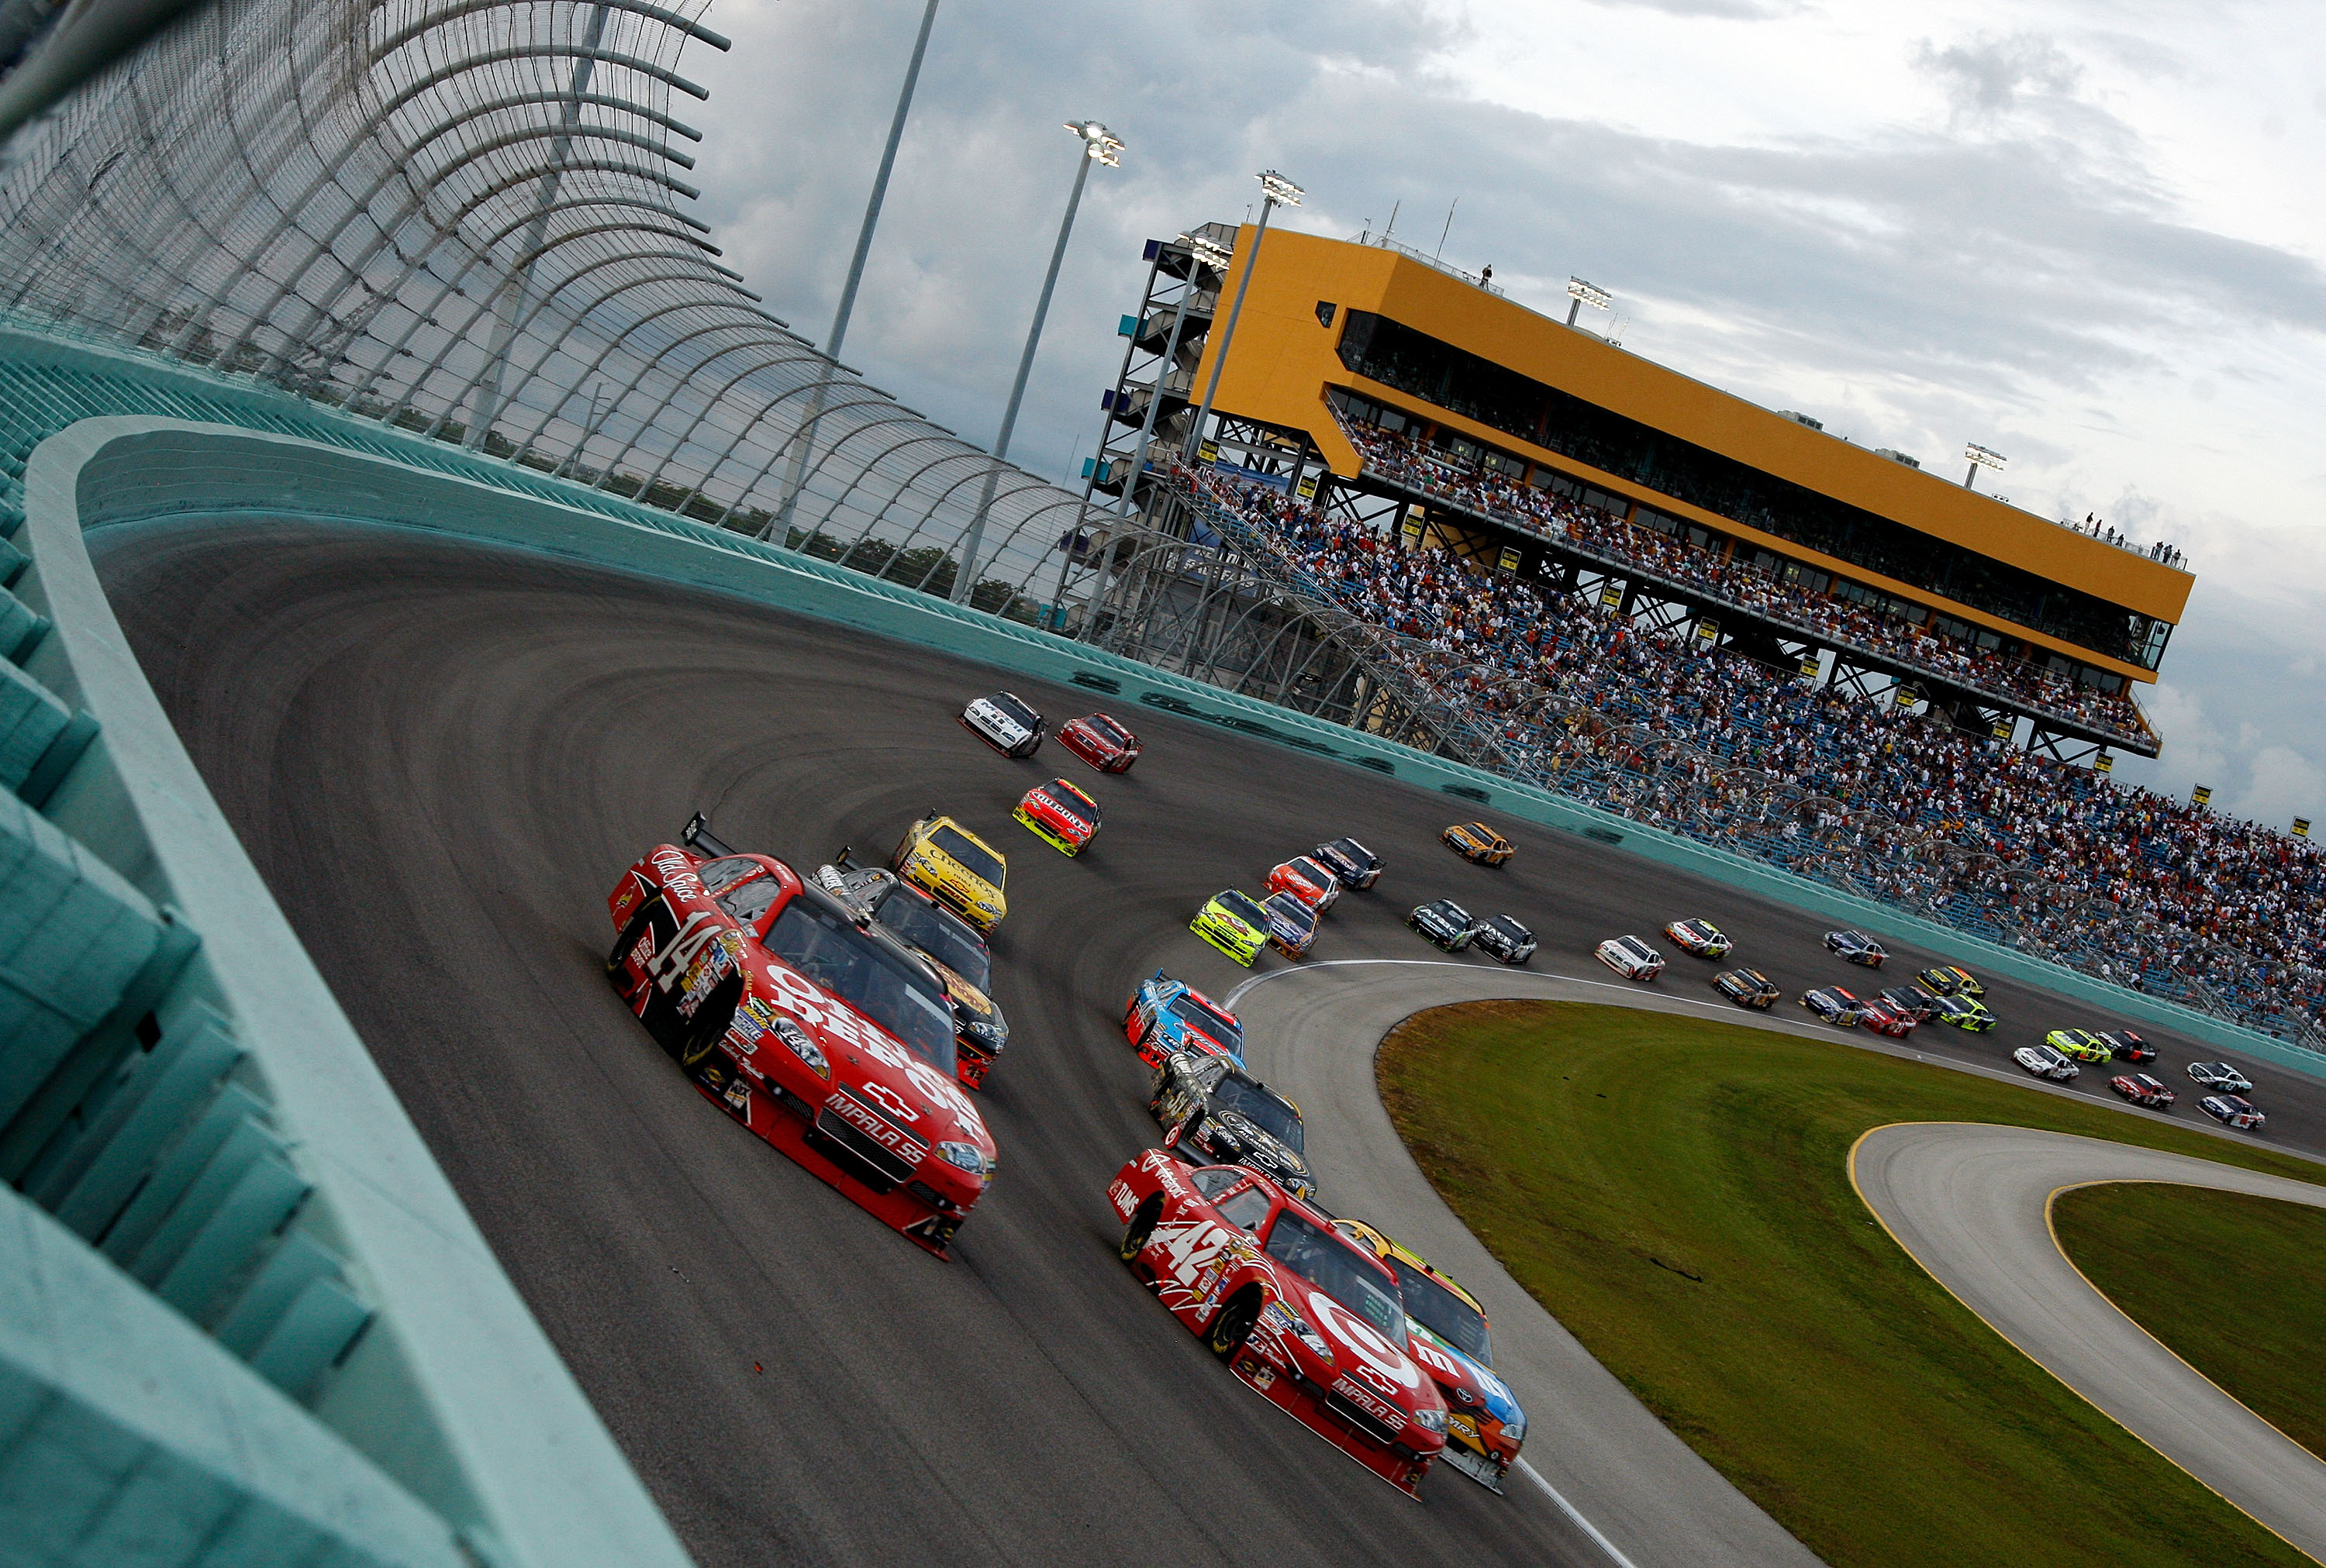 The 2010 Chase for the Sprint Cup could be the most competitive yet.